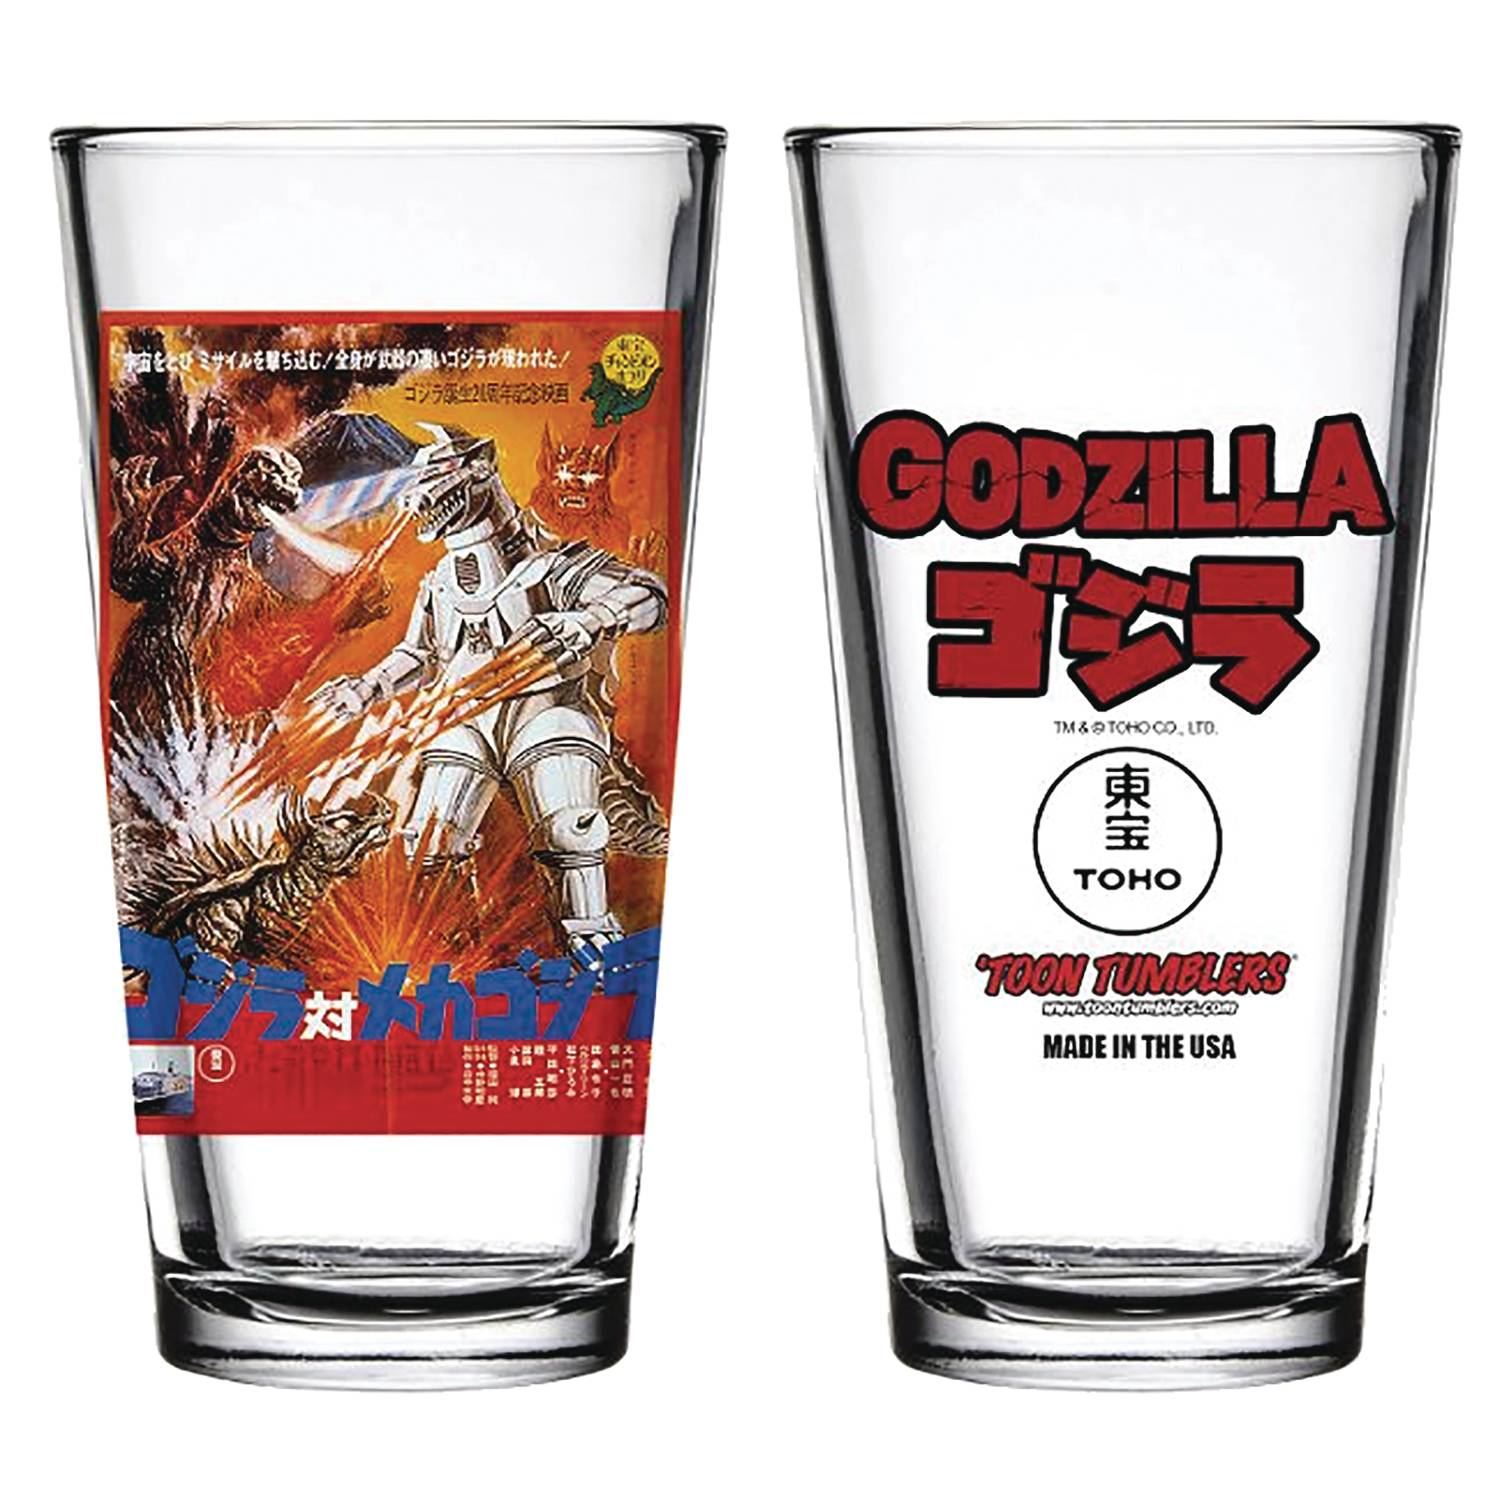 GODZILLA 1974 GODZILLA VS MECHAGODZILLA MOVIE PINT GLASS